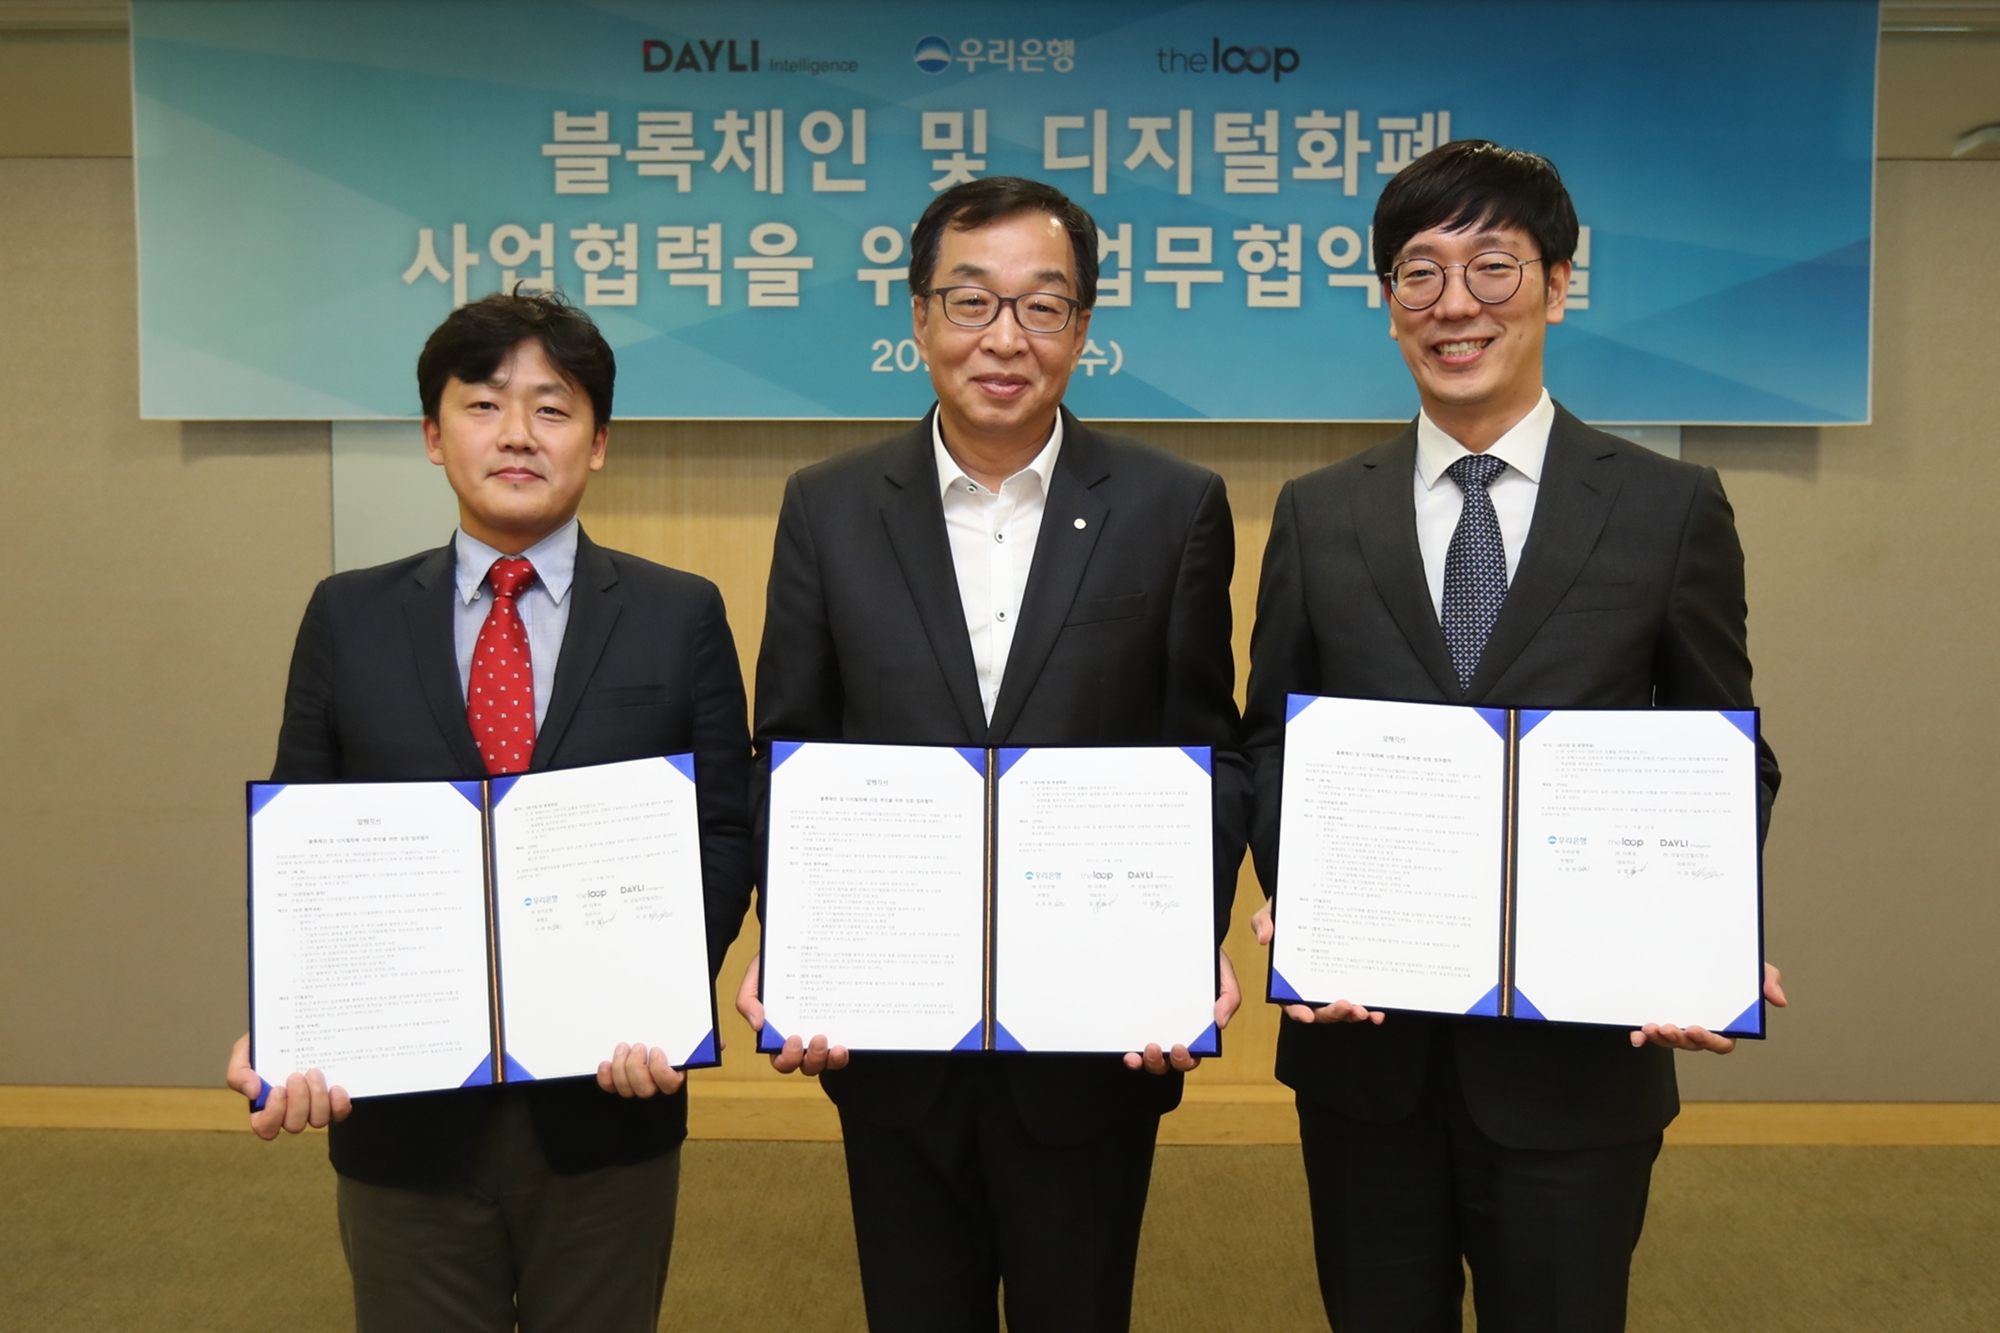 Woori Bank signed a memorandum of understanding (MOU) with blockchain technology firms Dayli Intelligence and The Loop on August 16 to cooperate on developing blockchain and digital coins